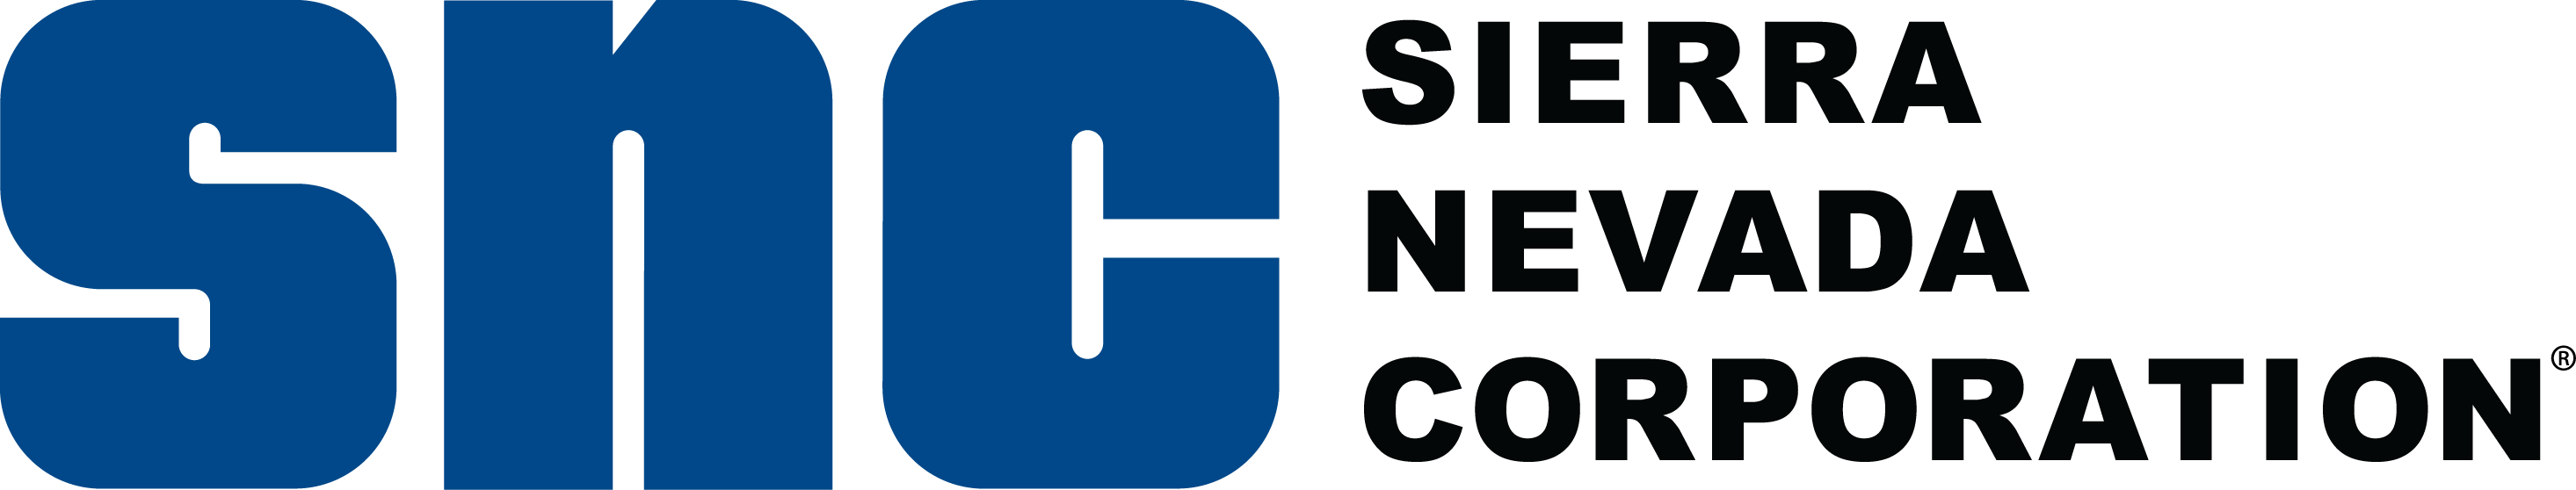 Sierra-Nevada-Corporation-Logo